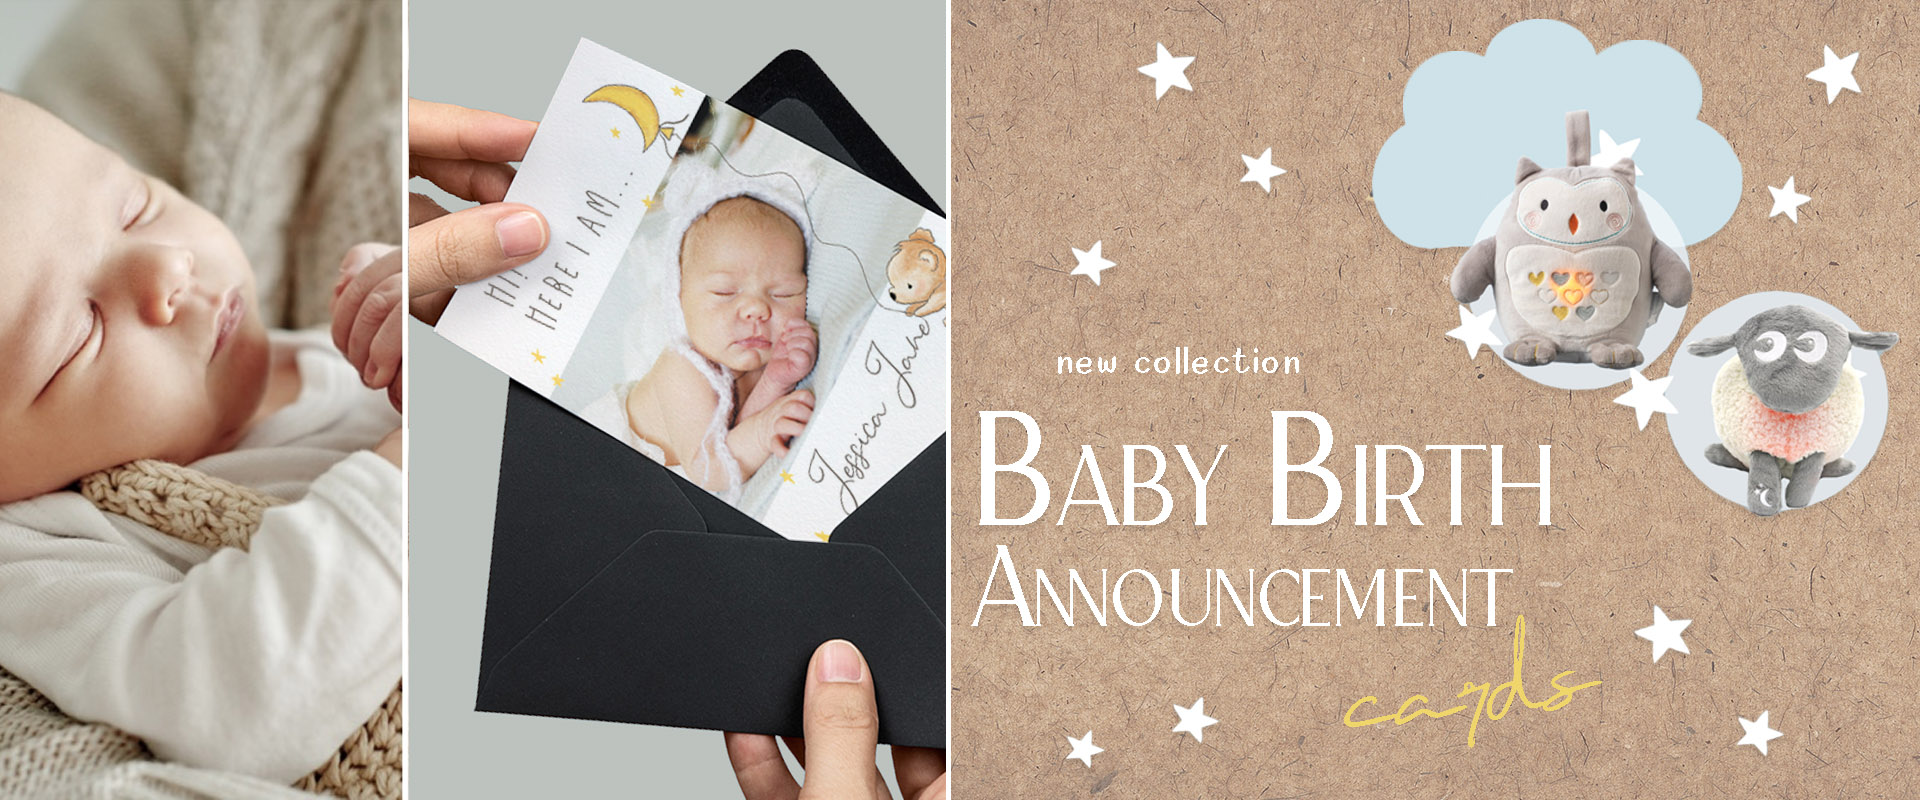 modern stationery ireland occasion stationery ireland high quality greeting cards personalised cards cork beautiful birth announcement cork ireland vintage lane